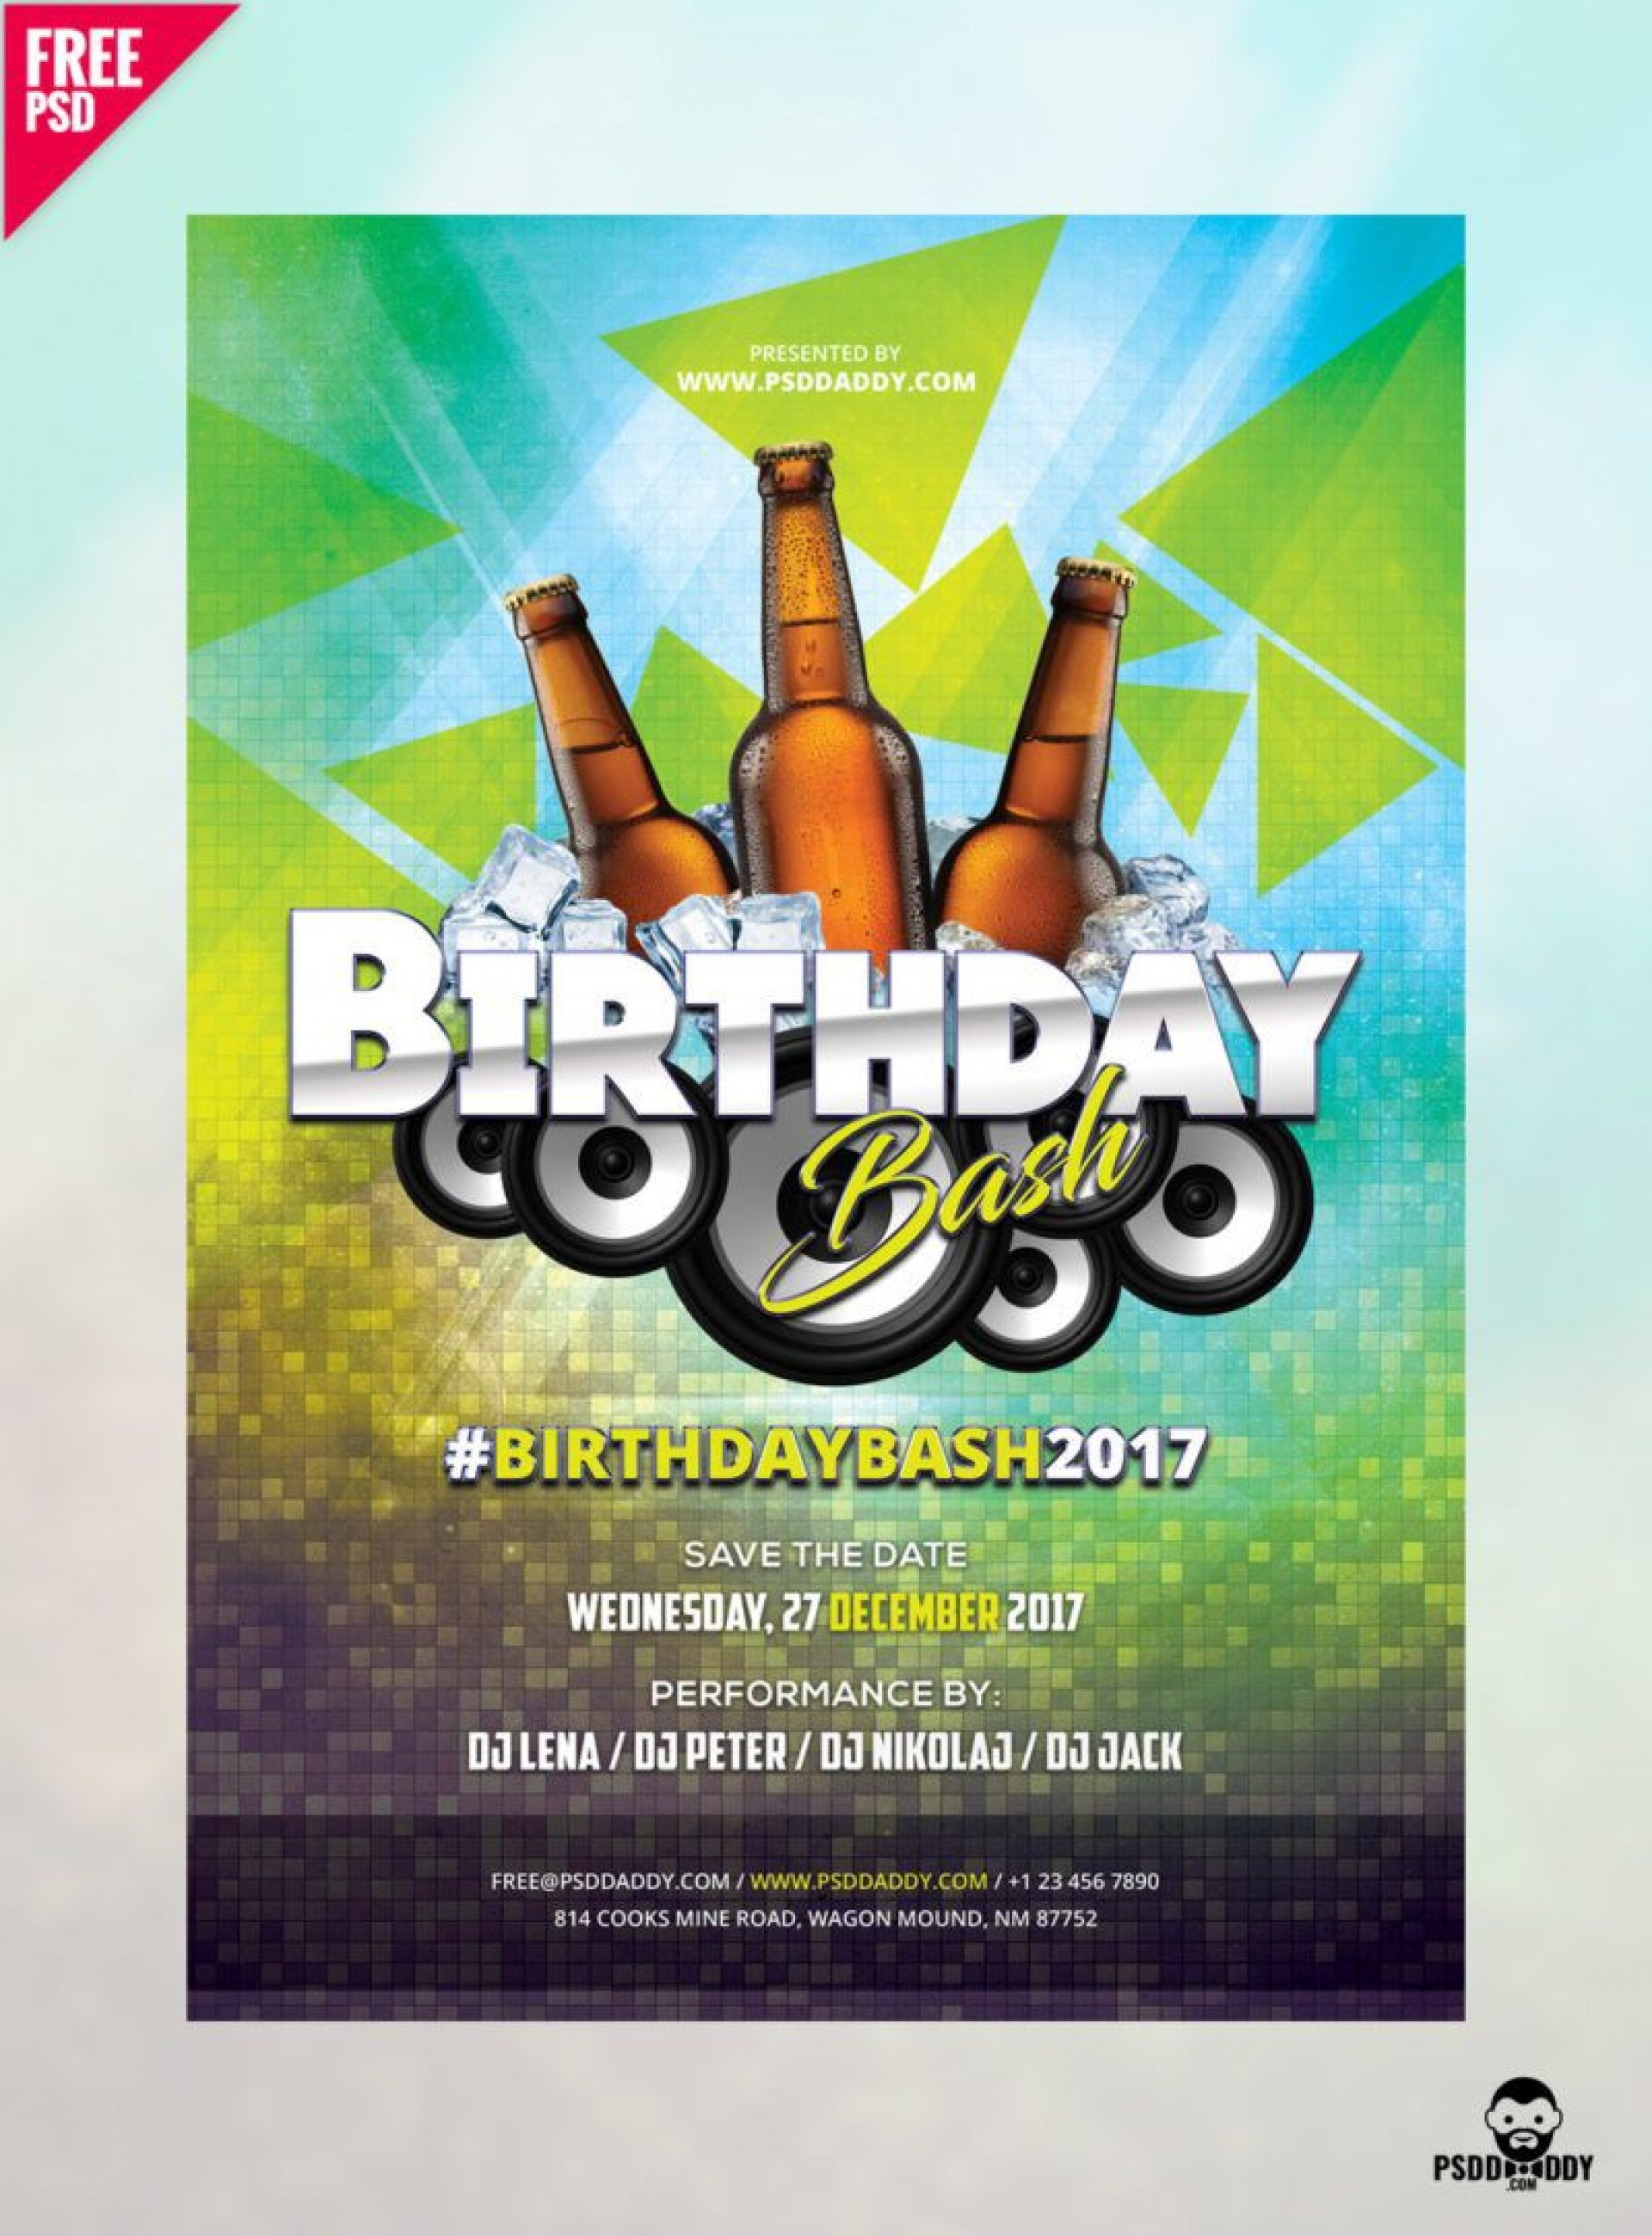 004 Unbelievable Birthday Party Invitation Flyer Template Free Download High Definition 1920